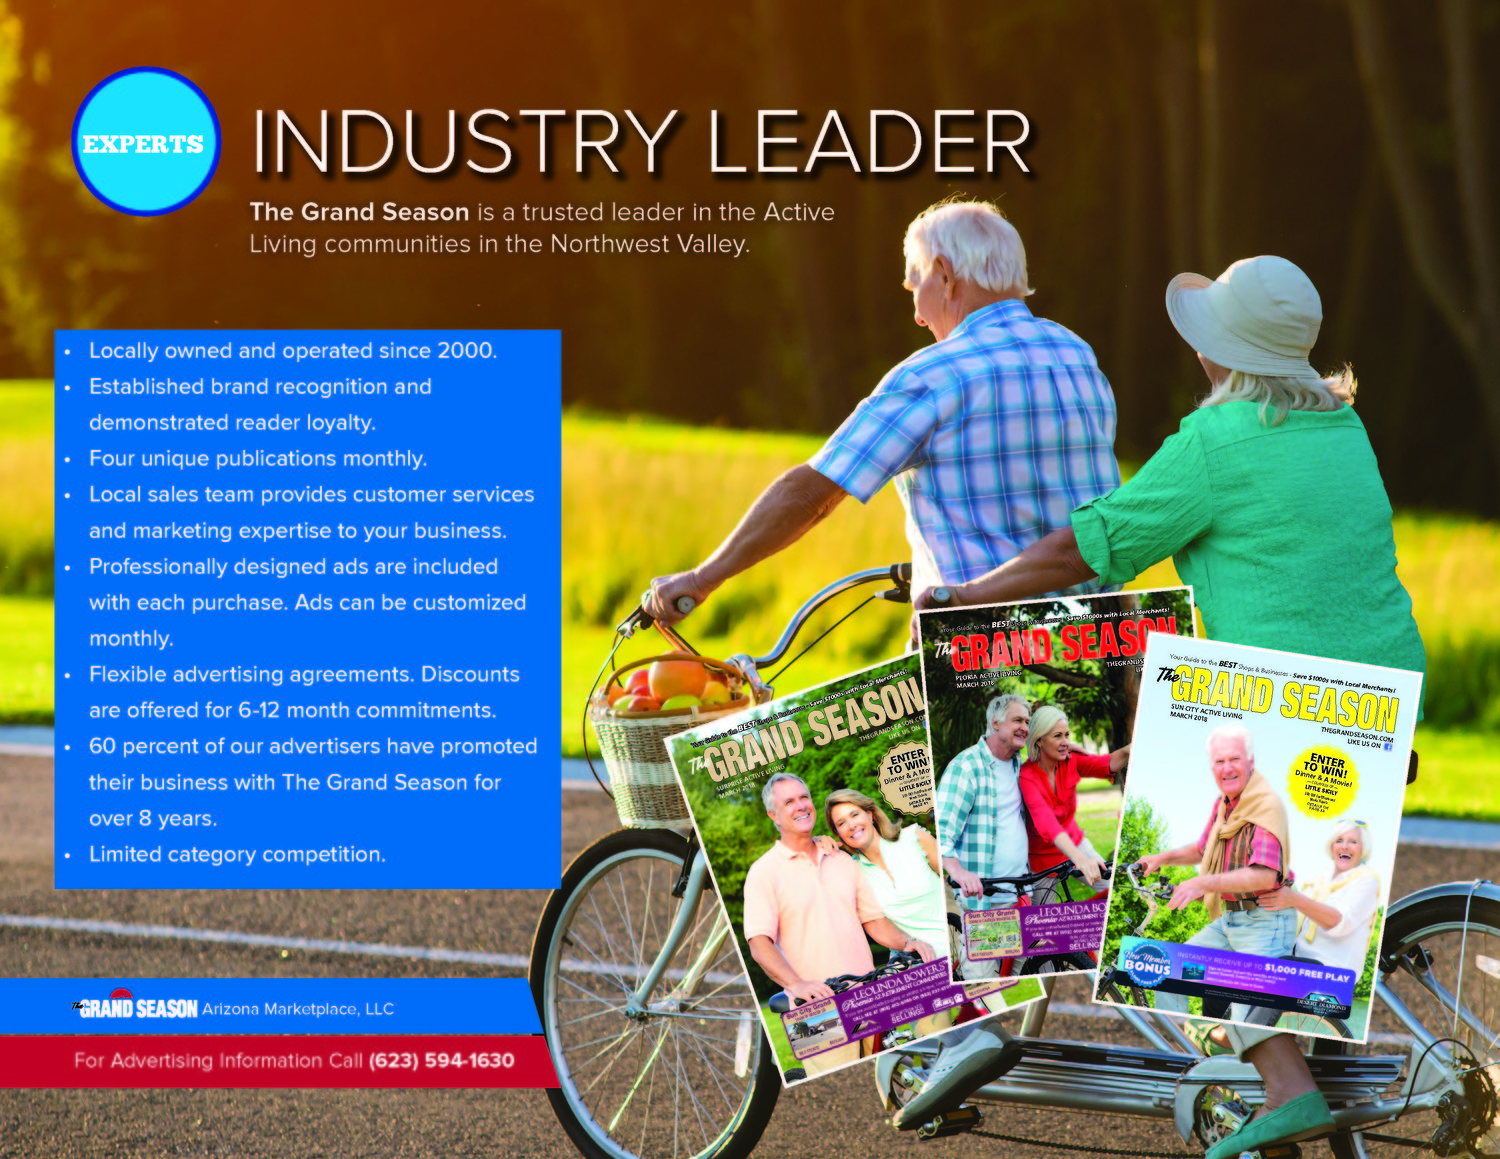 A Proven Leader in Active Living Communities.